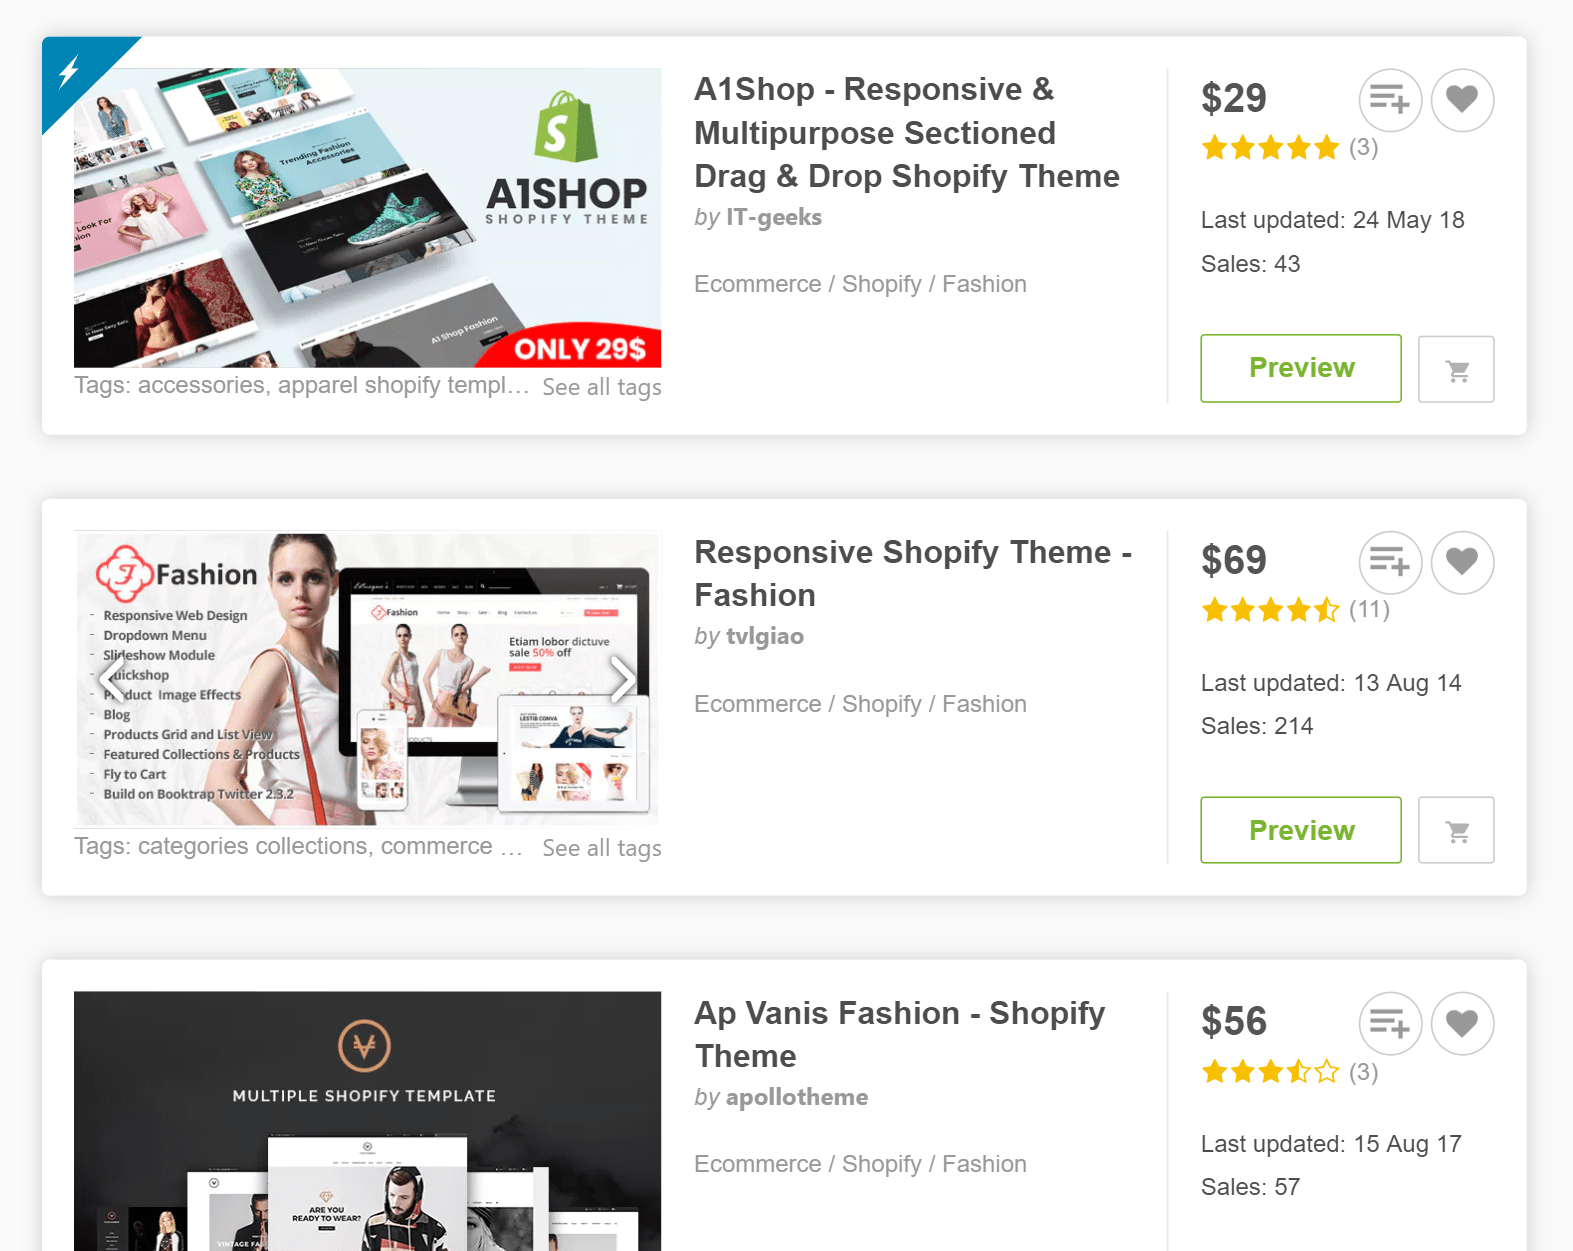 Browsing for eCommerce themes